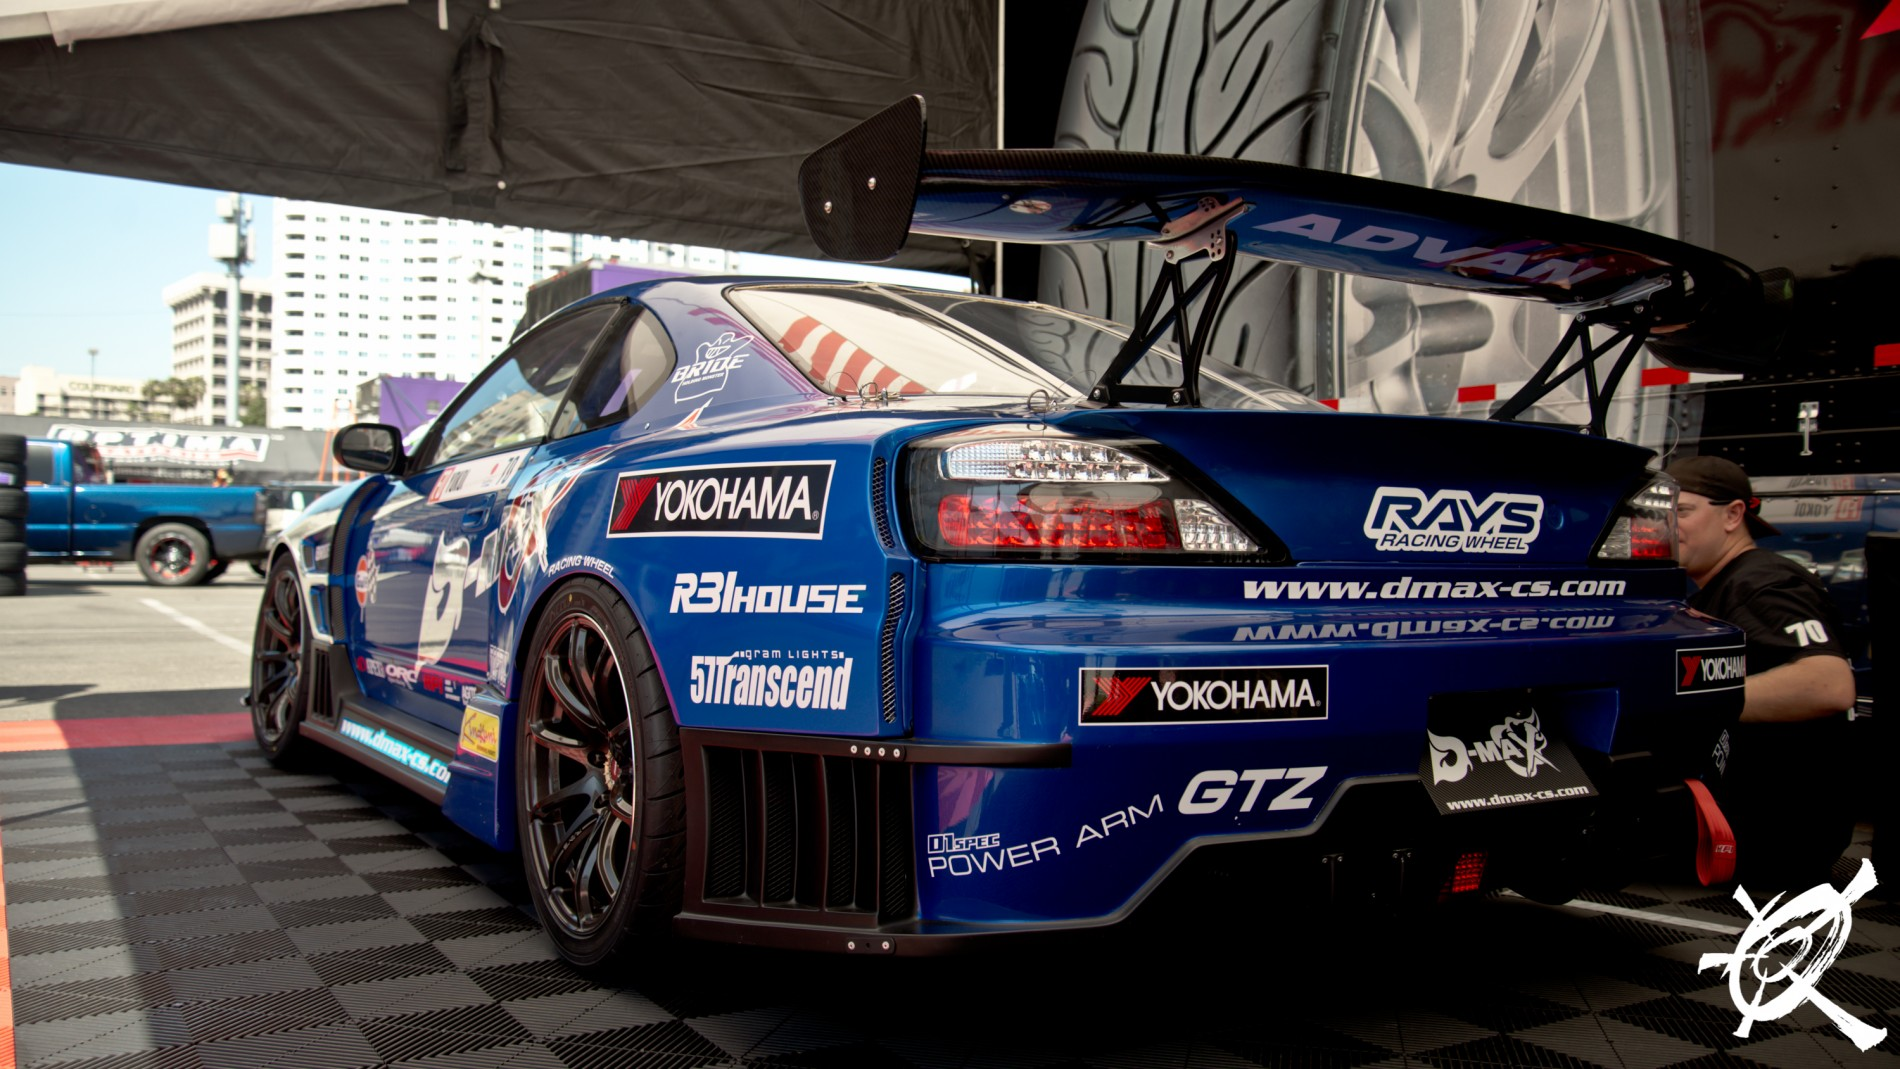 Sorry Forrest Wang but Yokoi has the better looking S15